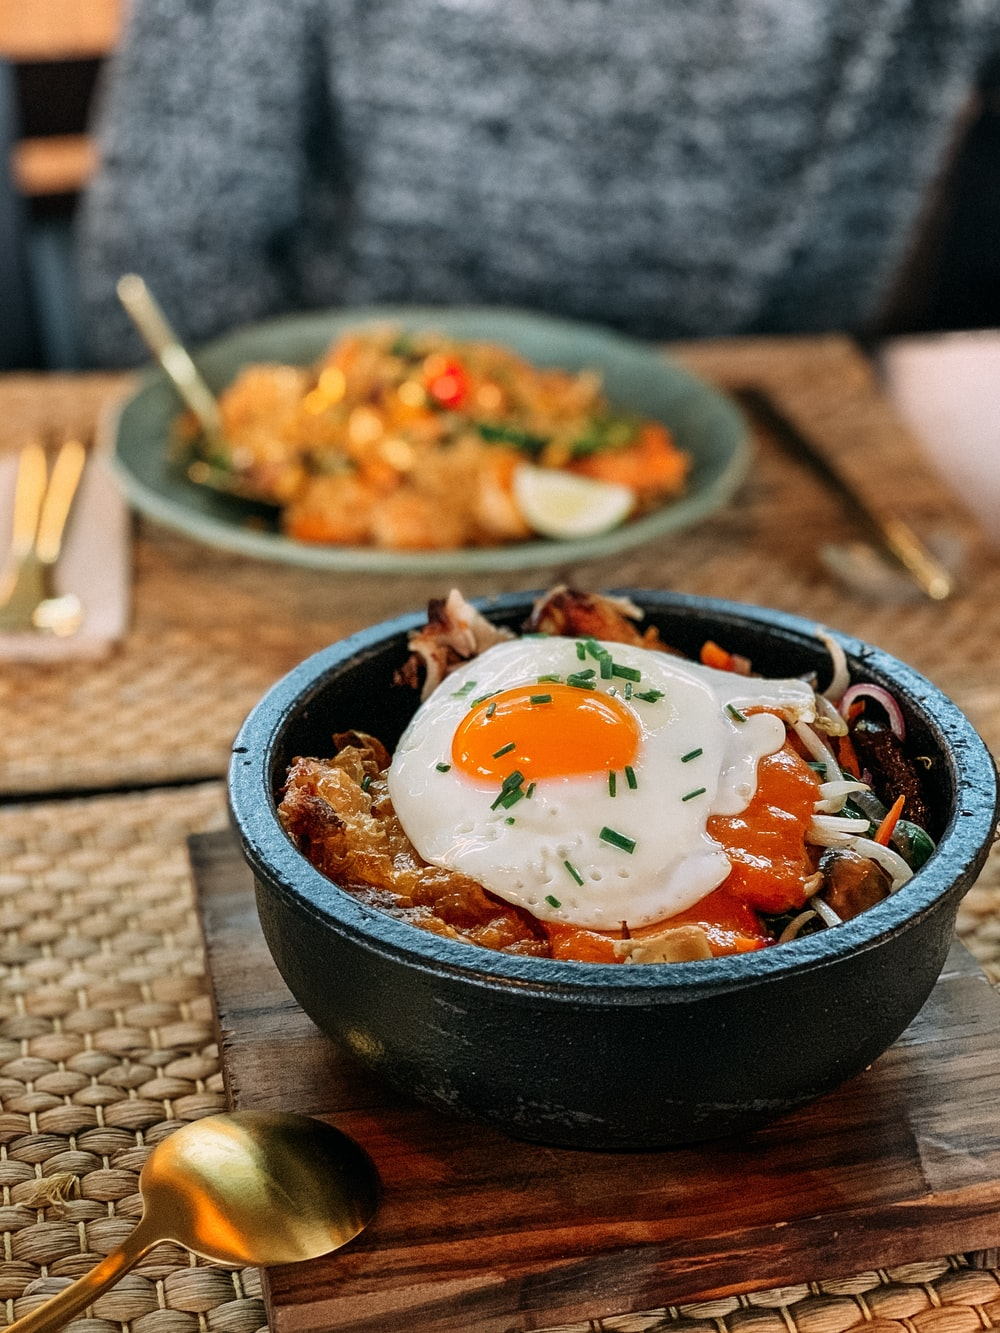 bowl of rice and eggs